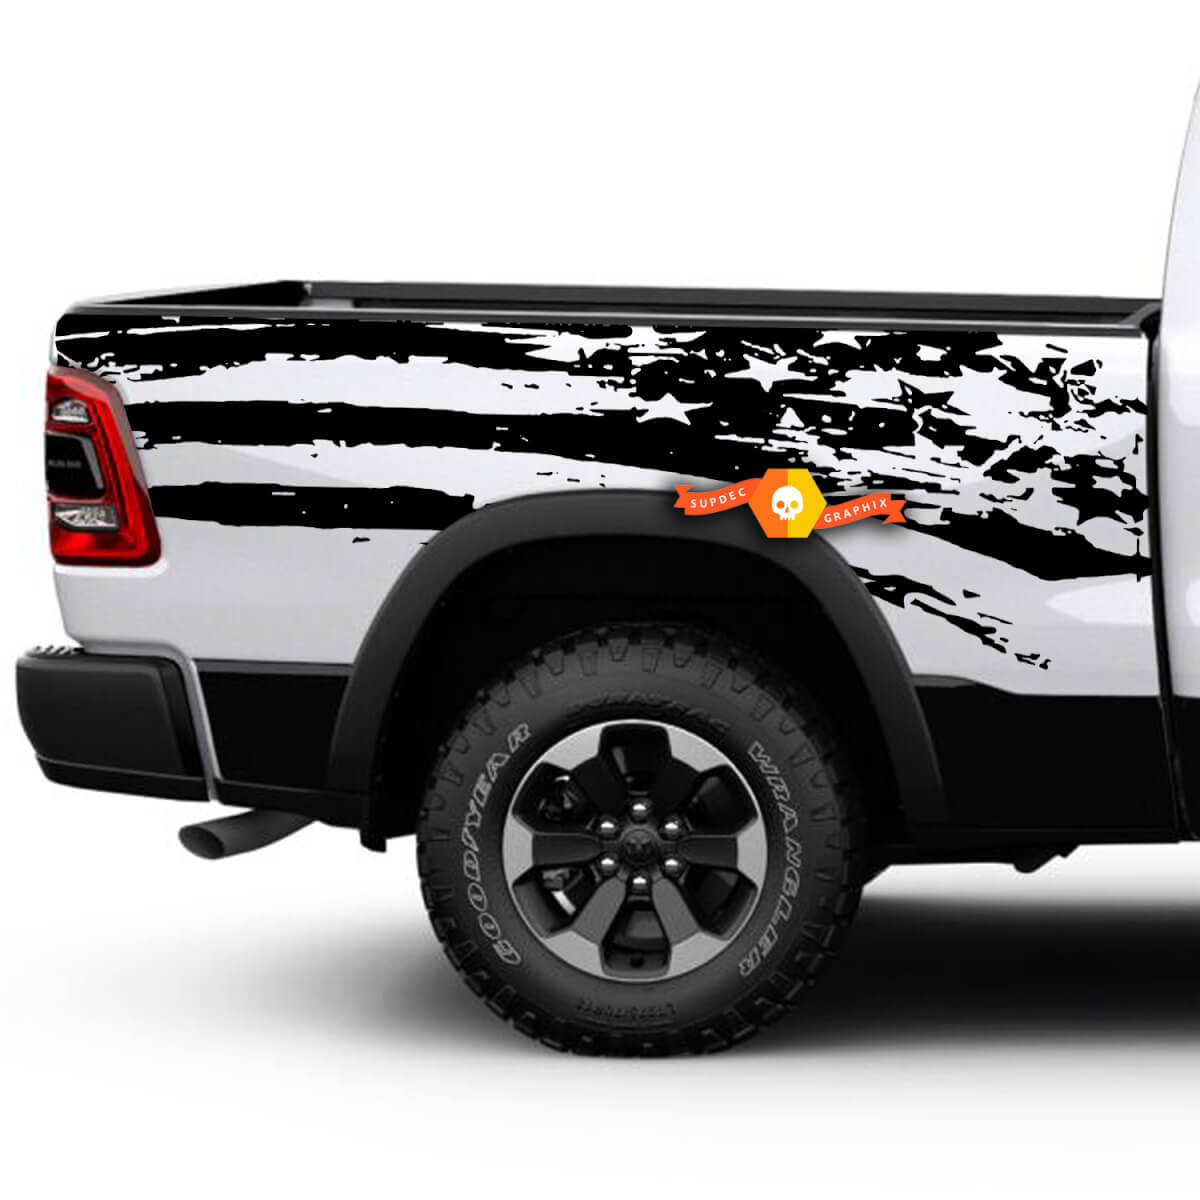 Product dodge ram rebel american flag side pickup distressed grunge vinyl graphic decal